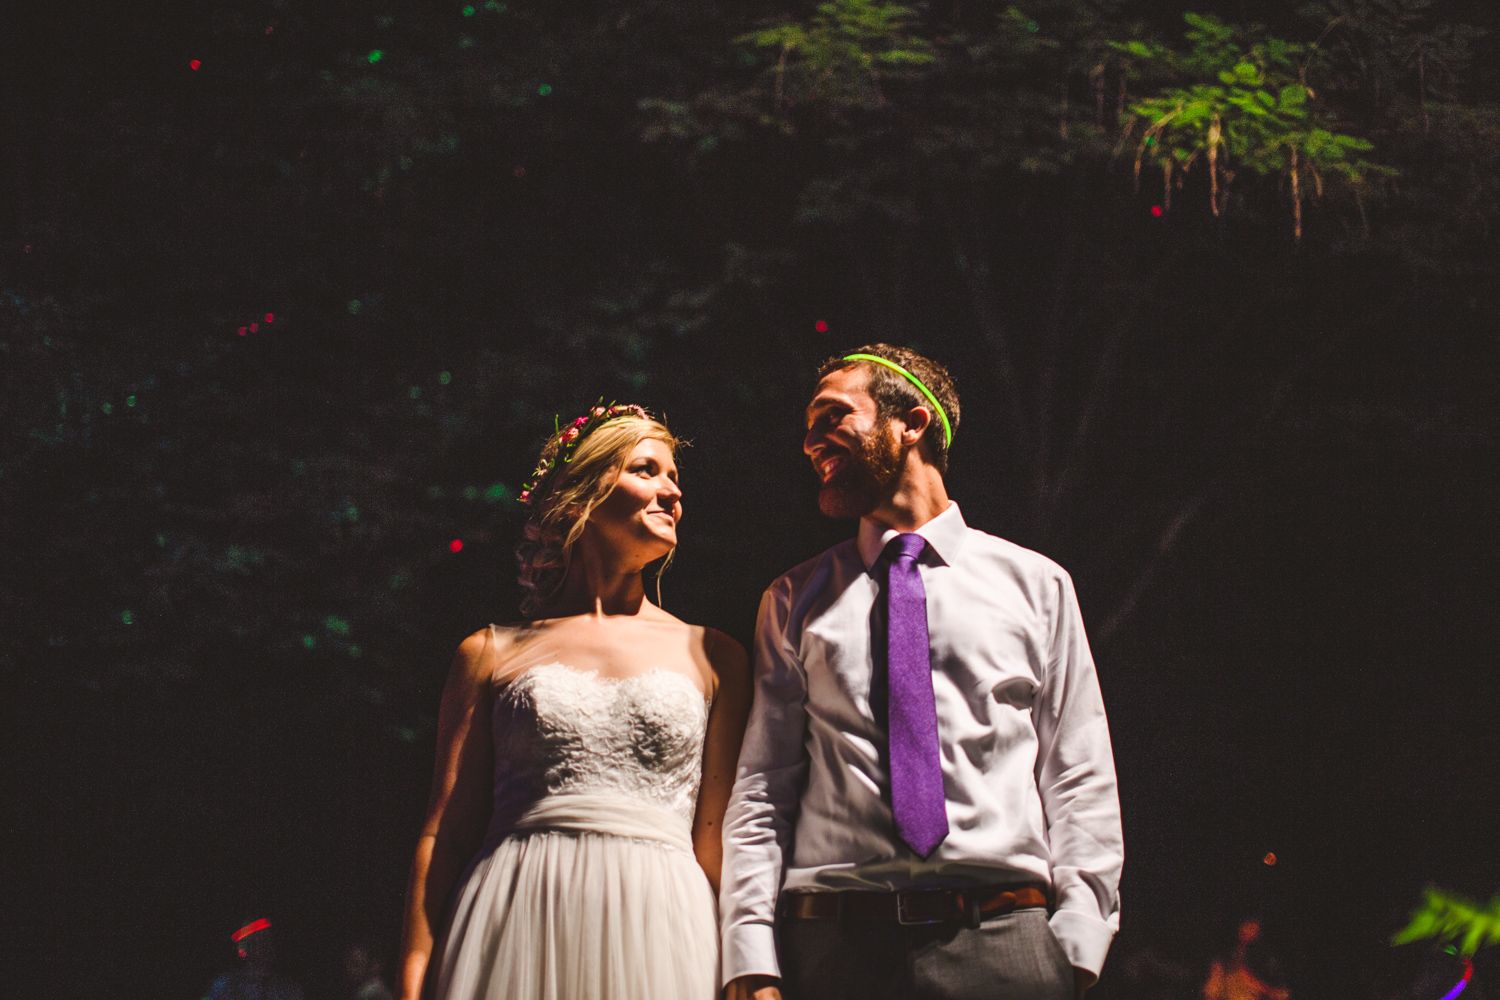 030a - night portrait of bride and groom in front of neon trees.jpg